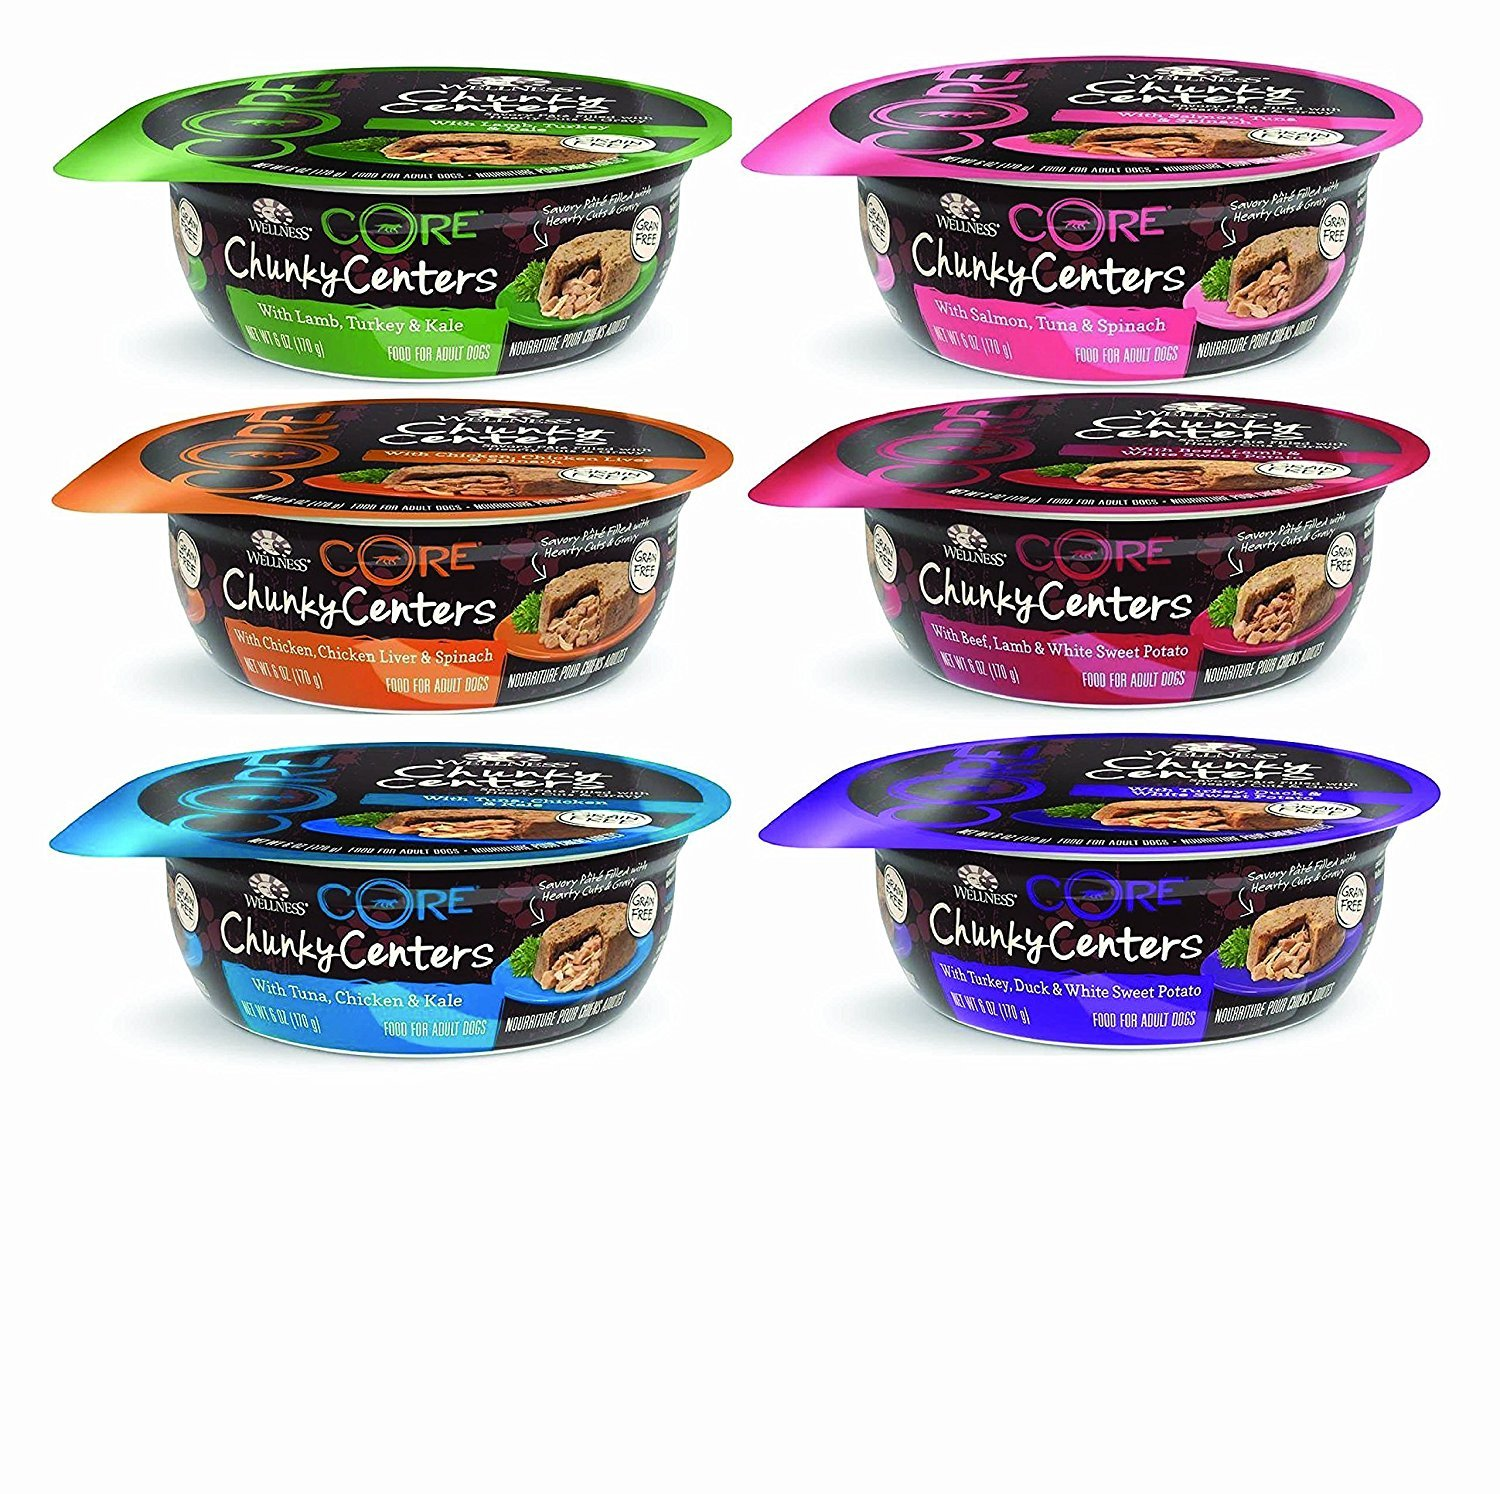 Wellness Core Chunky Centers Adult Dog Food Variety 6 oz x 12 cans 6 Flavors Chicken, Beef, Lamb, Turkey, Tuna, and Salmon